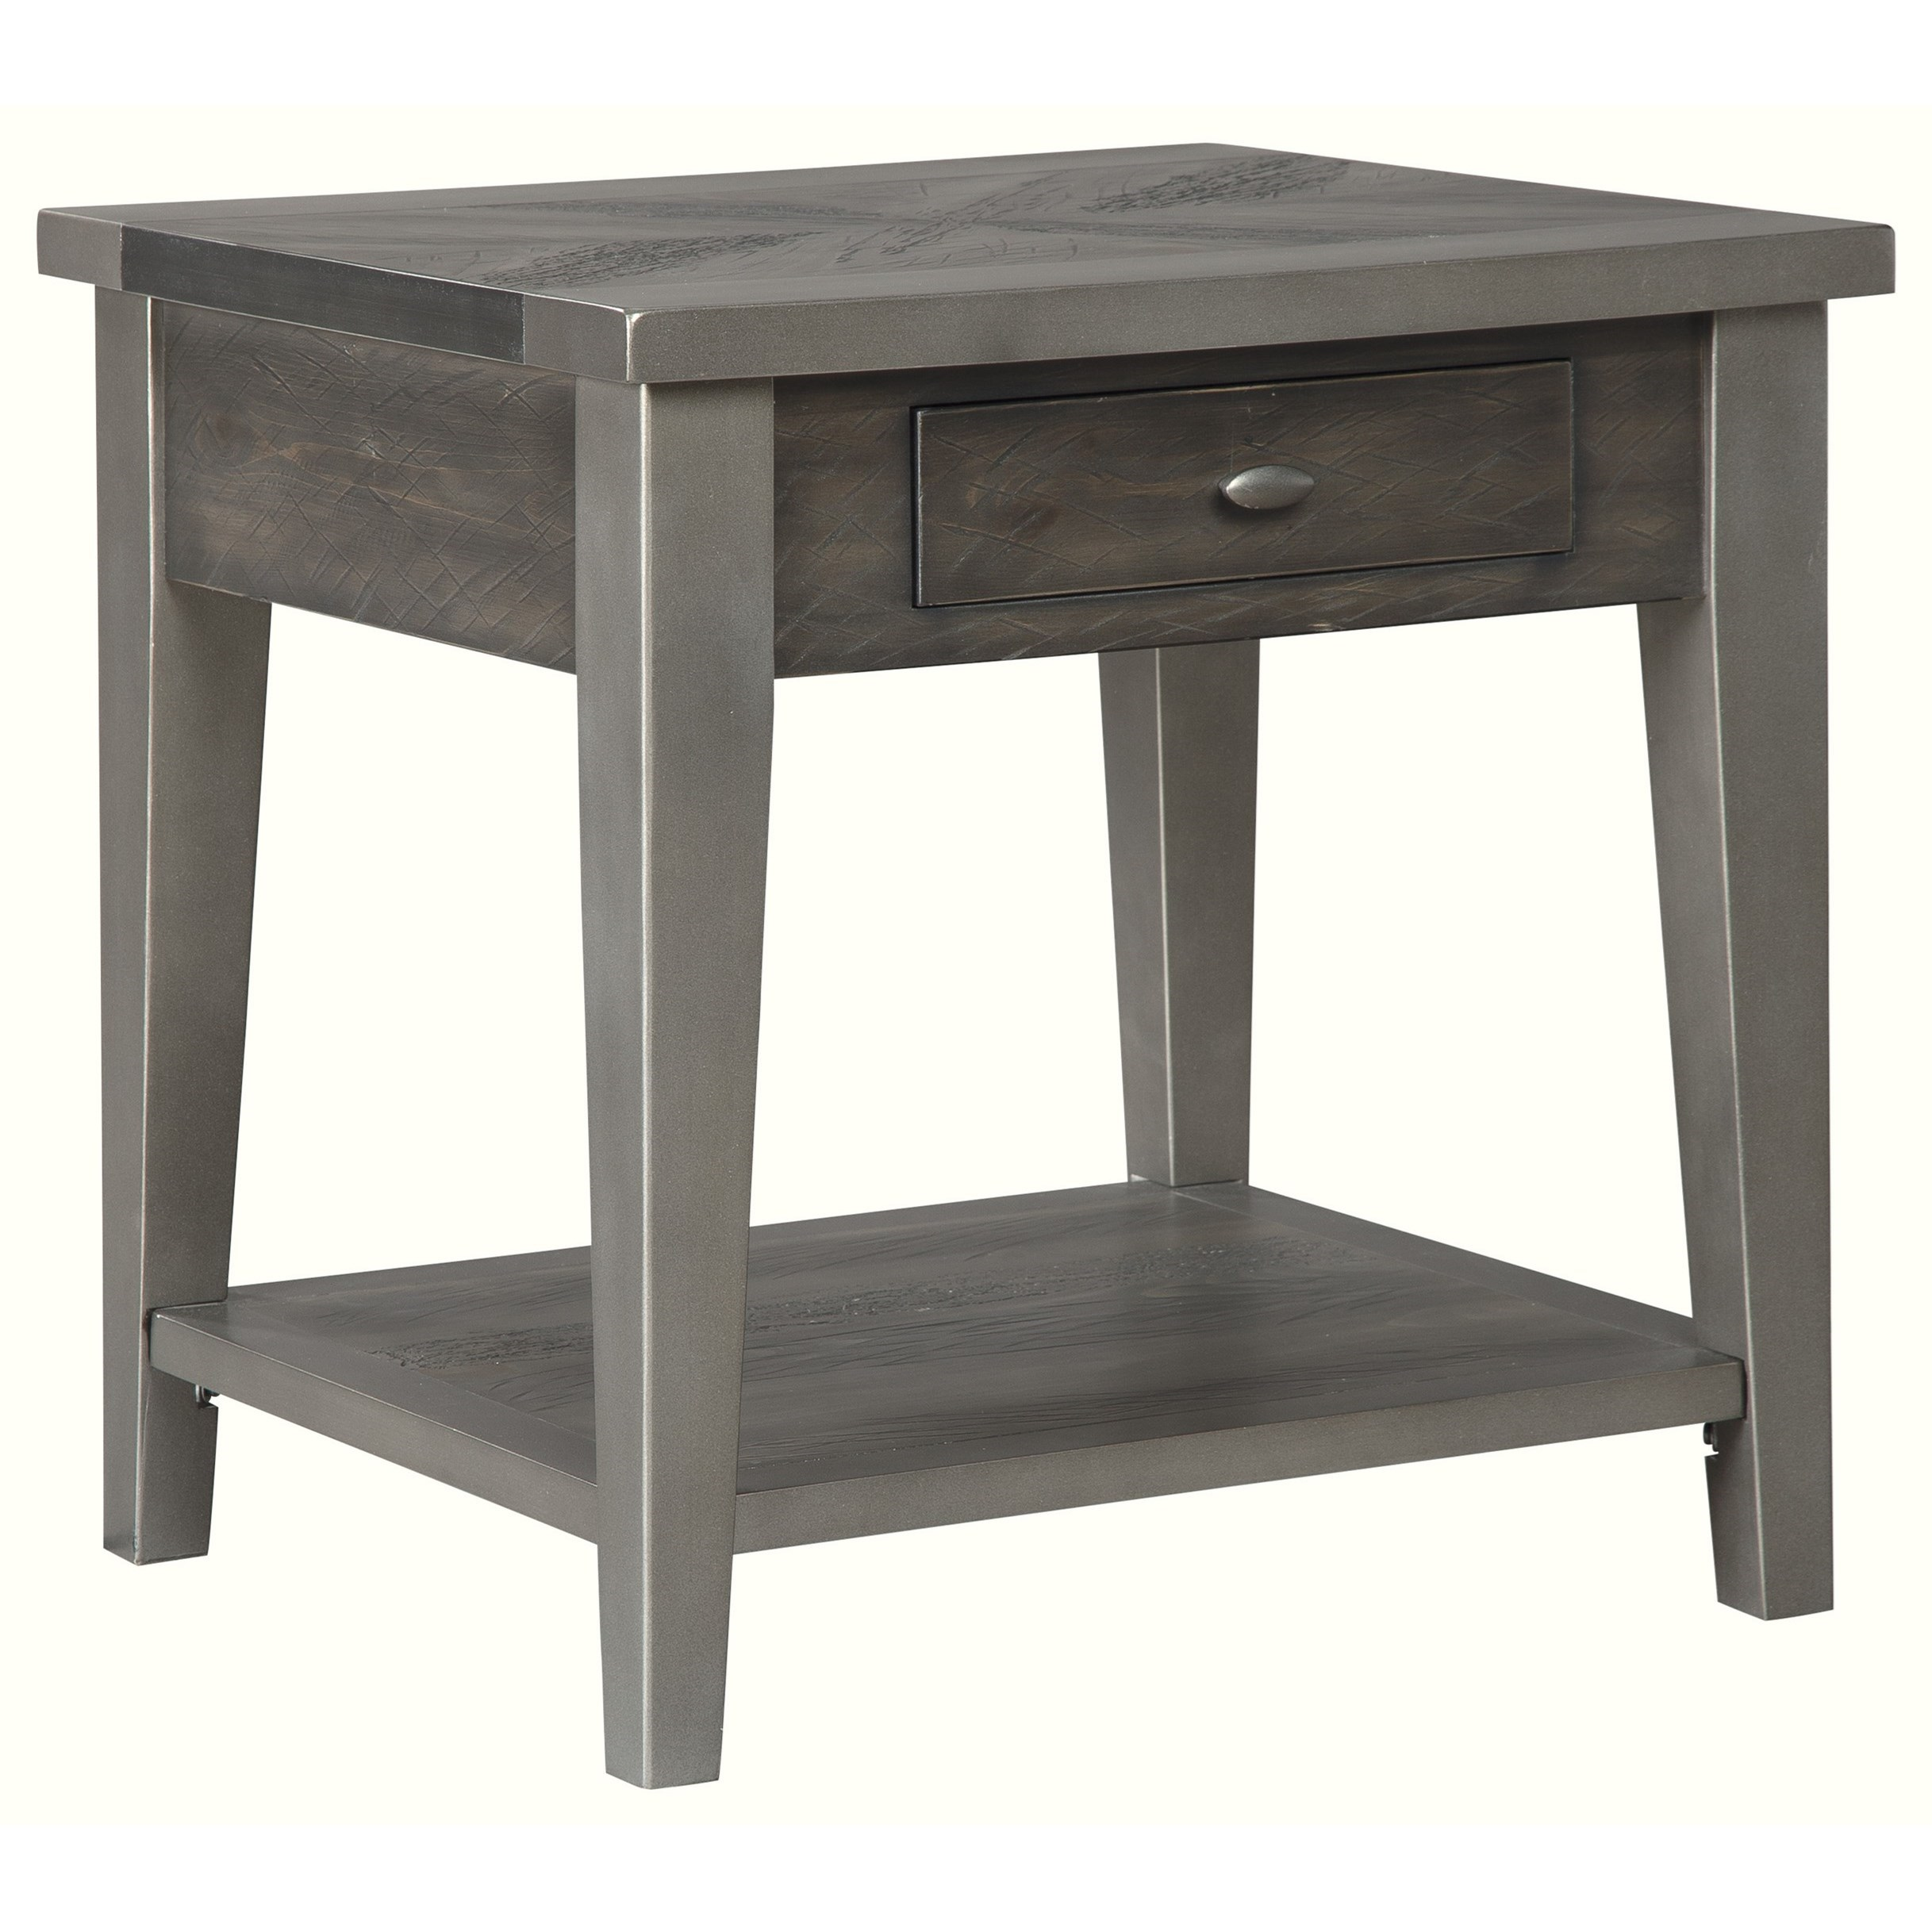 Branbury End Table by Signature Design by Ashley at Sparks HomeStore